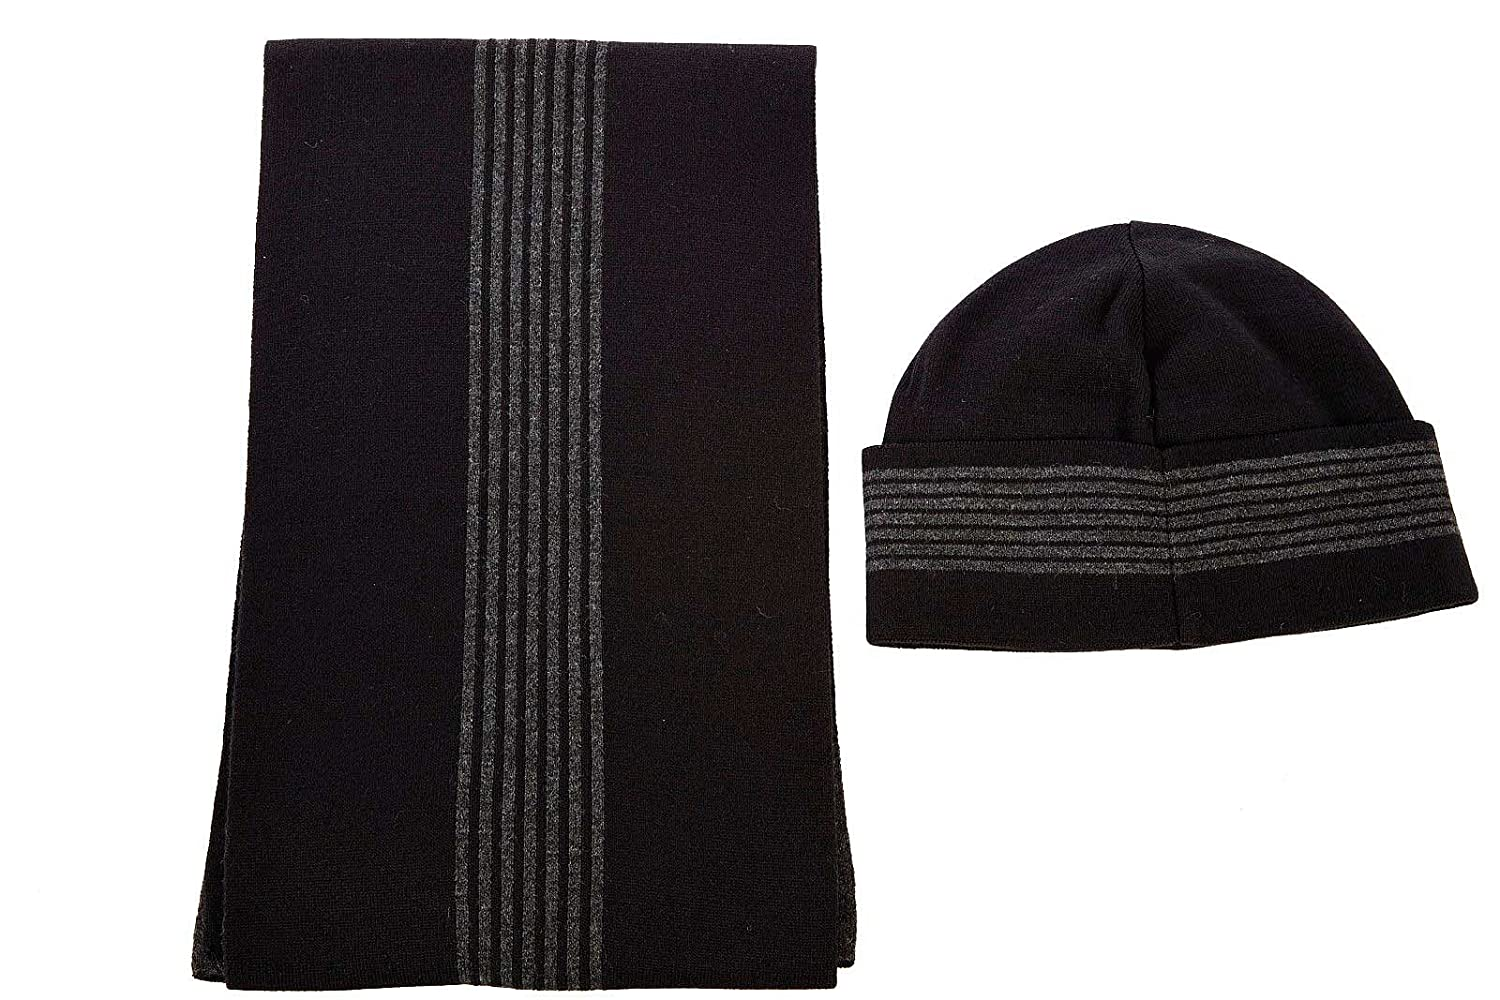 a537b2ee351 Emporio Armani EA7 men s beanie hat with scarf grey  Amazon.co.uk  Clothing